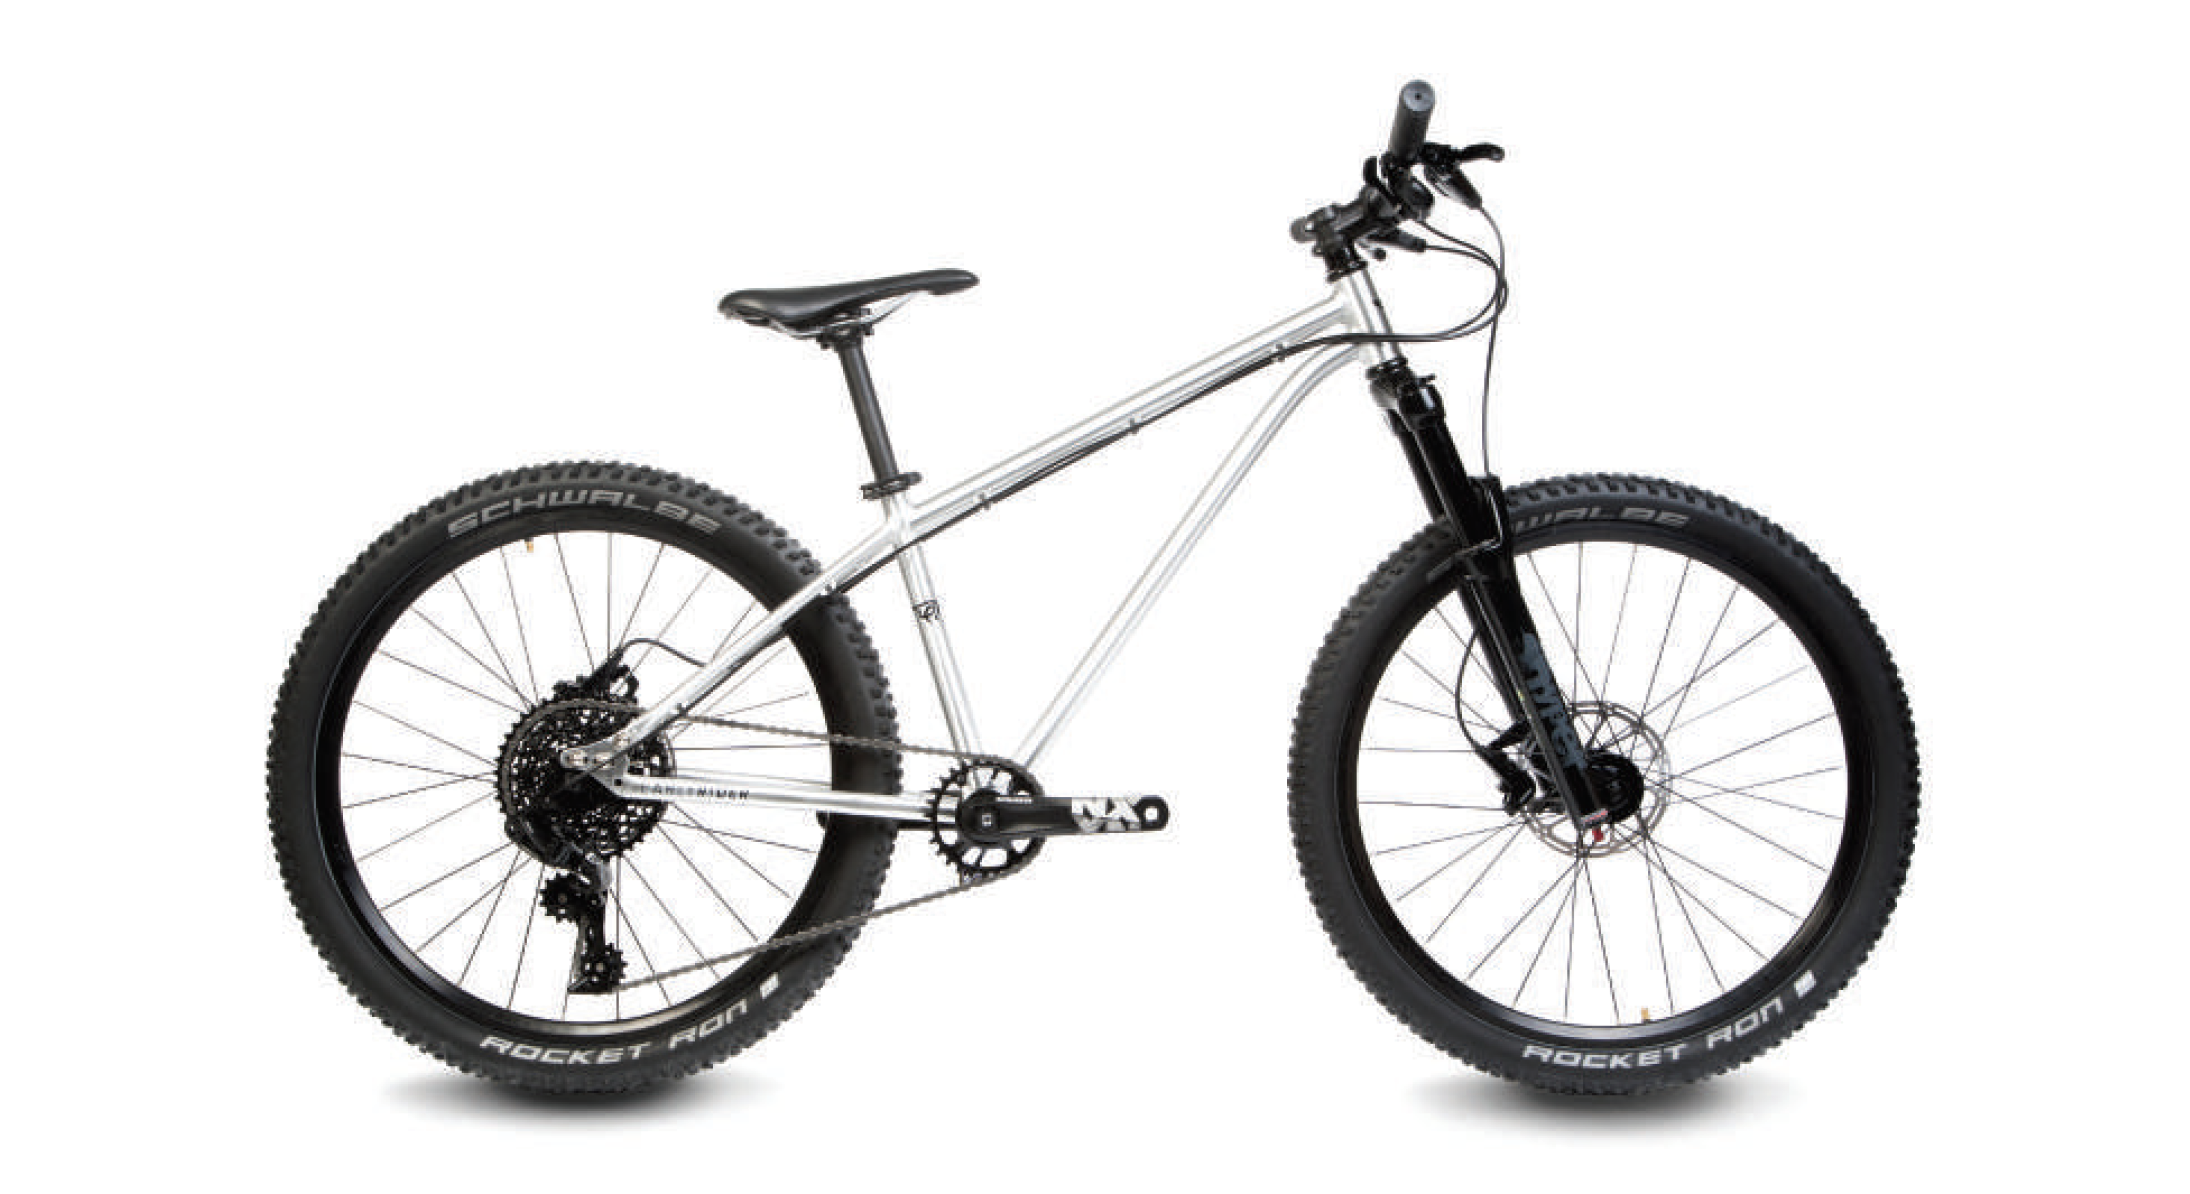 The Early Rider T24 Works Edition aluminum hardtail is outfitted with a mix of SRAM and Ritchey components and lightweight Maxxis trail tires. It retails for ,299.